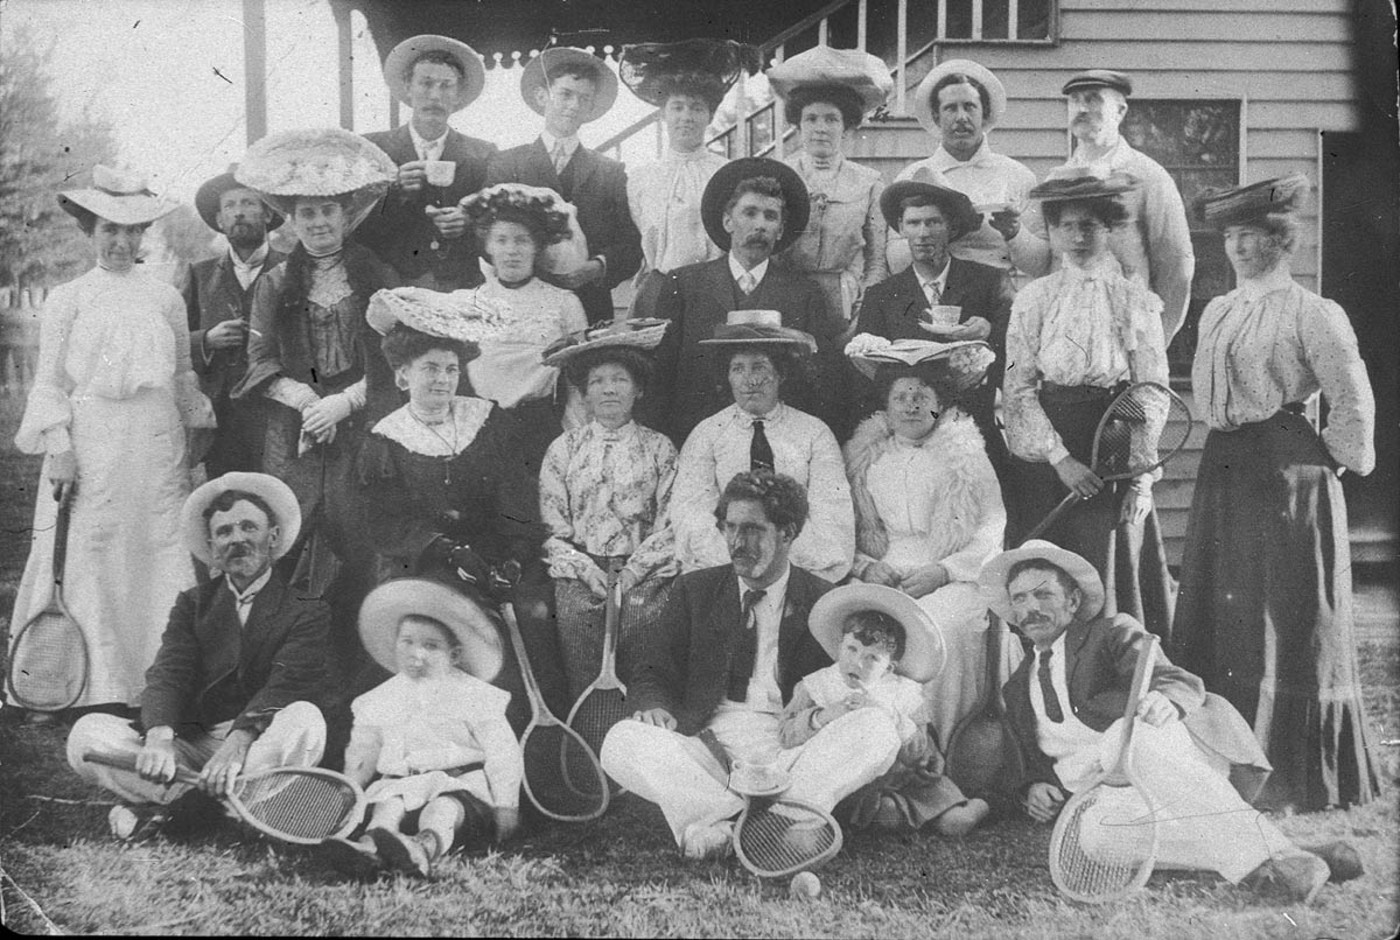 Tennis party at Candelo Park, Candelo, NSW, ca. 1903, photographer unknown